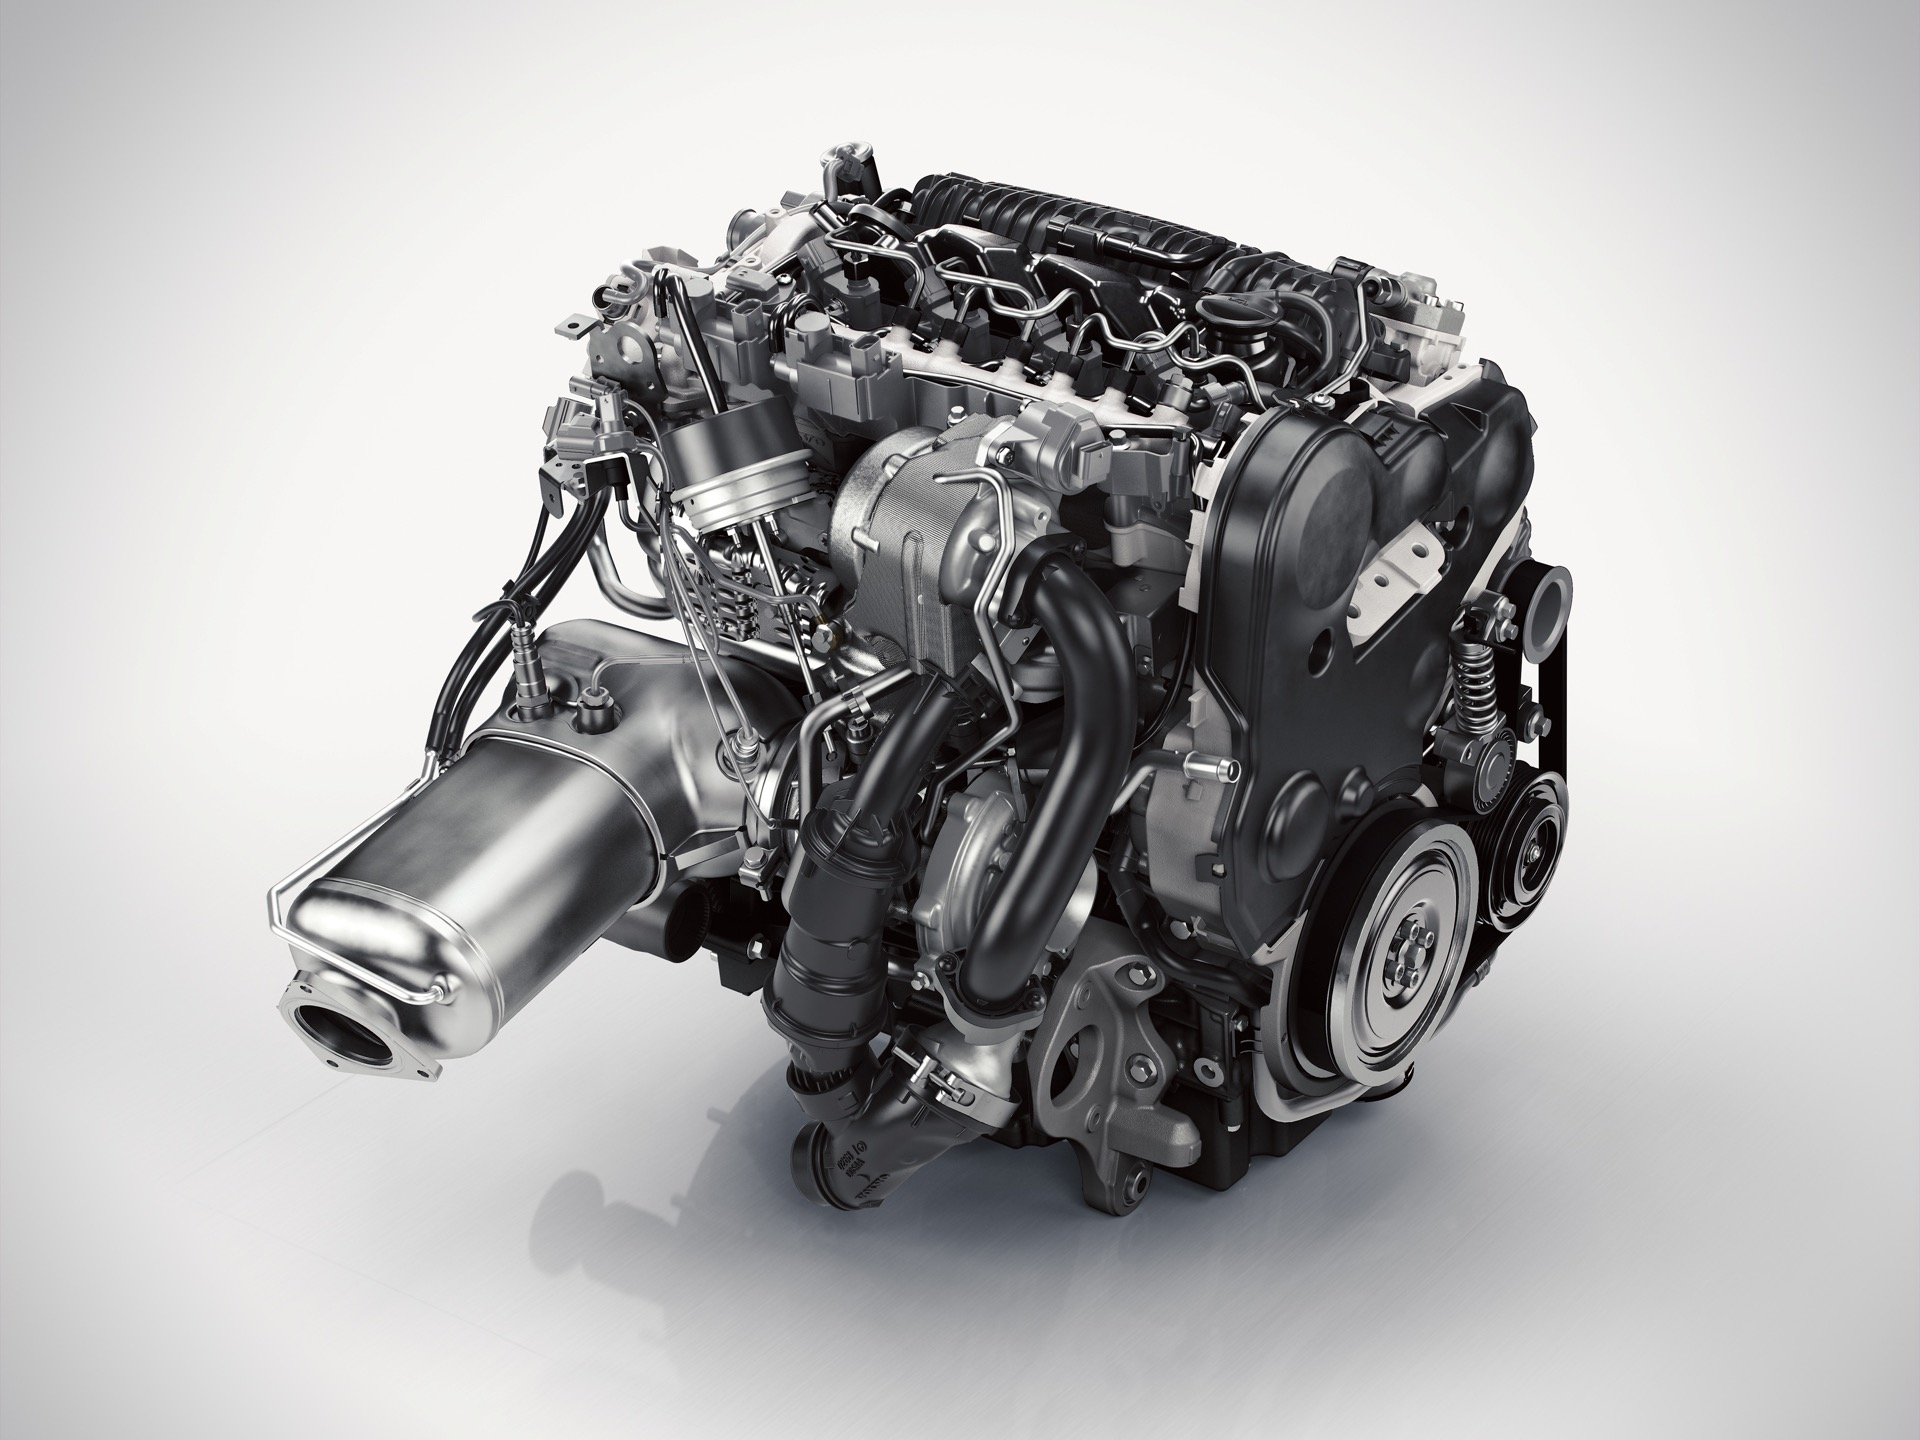 Drive E 4 Cylinder Diesel Engine D5 Rear -  2014, 2015, 2016, 2016 XC90, 2017, 2017 New S90, 2017 New V90, 2017 S60, 2017 V60, 2017 XC70, 2017 XC90, Environment, Exterior, Images, New S90, New V90, S60, Sustainability, Technology, V60, Volvo, XC70, XC90